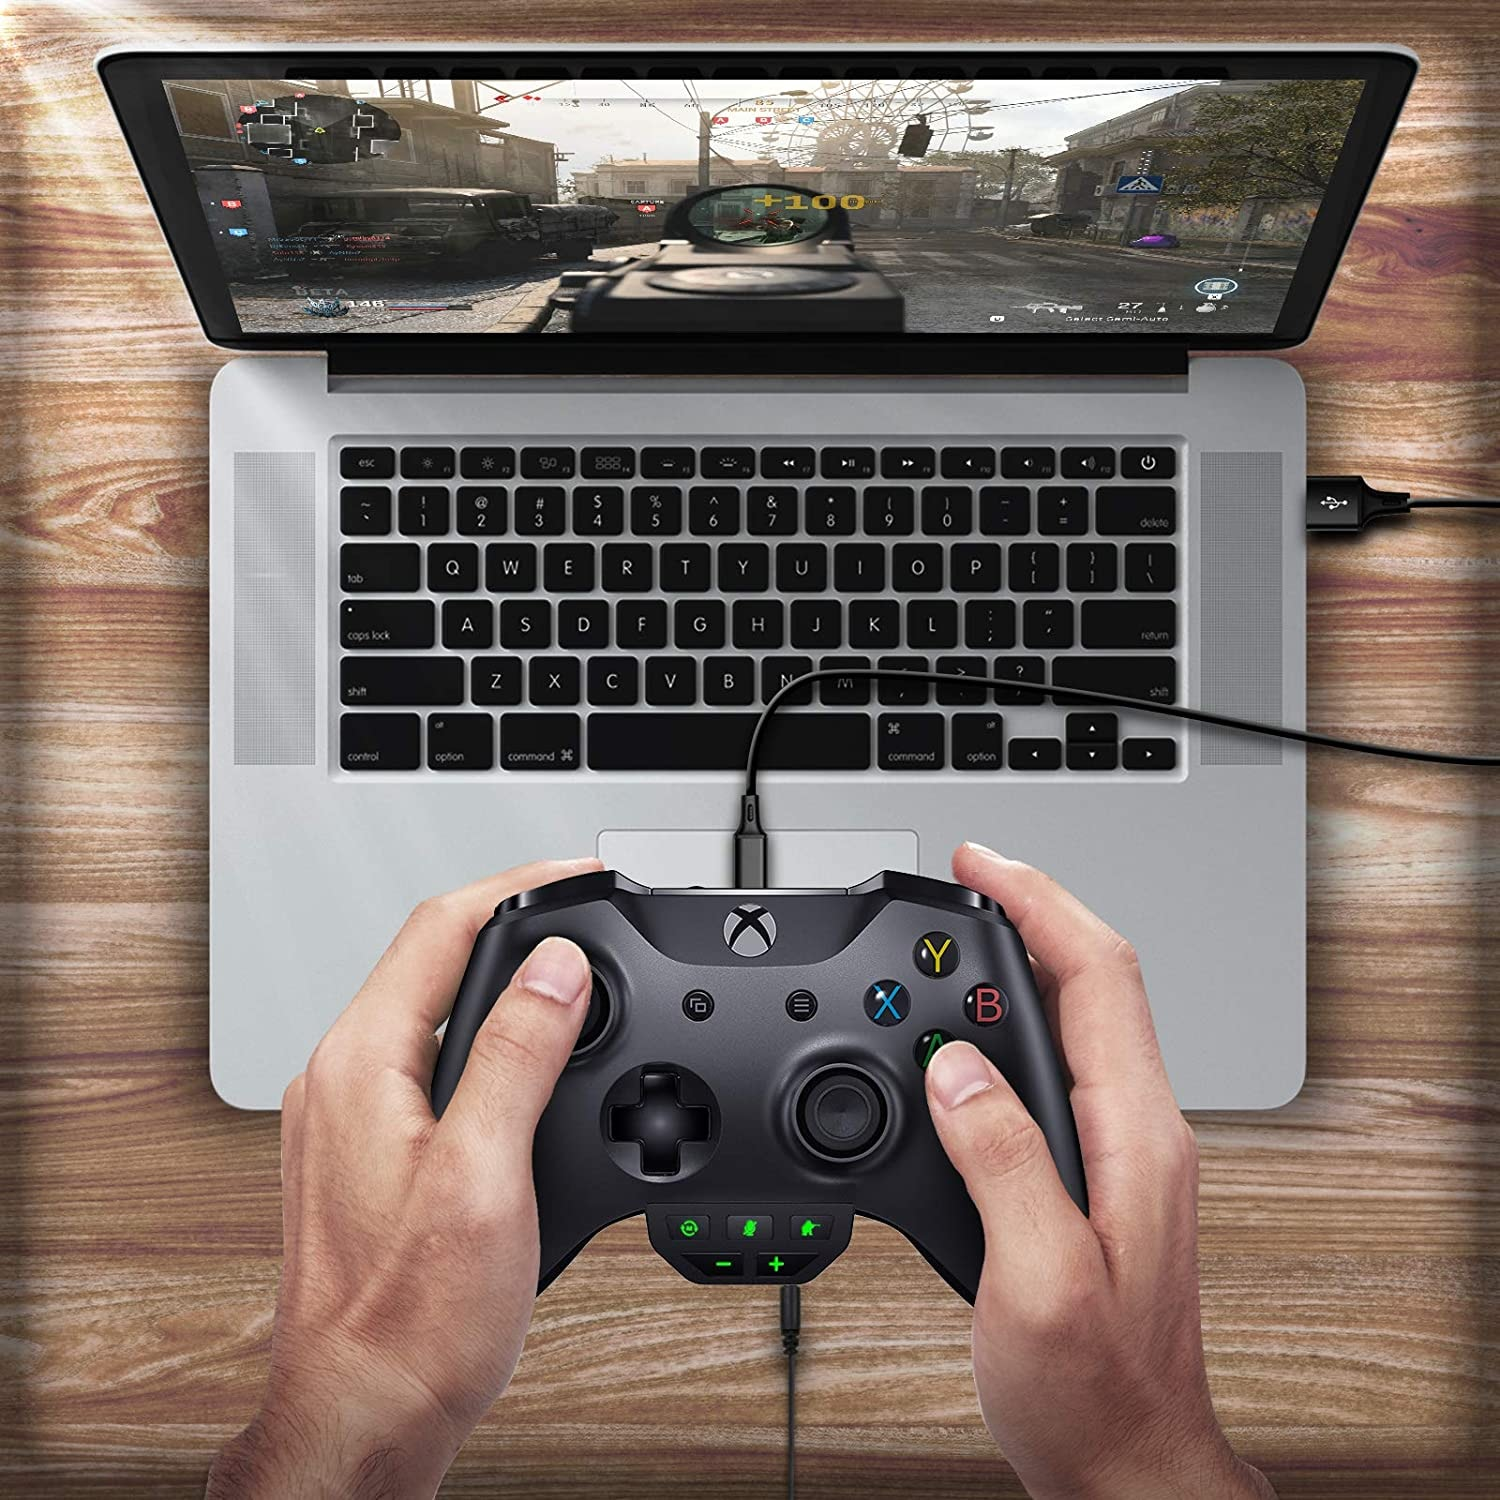 Sound Enhancer For Xbox Series X S One S Wireless Controller Stereo Headset Adapter Joystick Audio Headphone Converter Gaming - 6